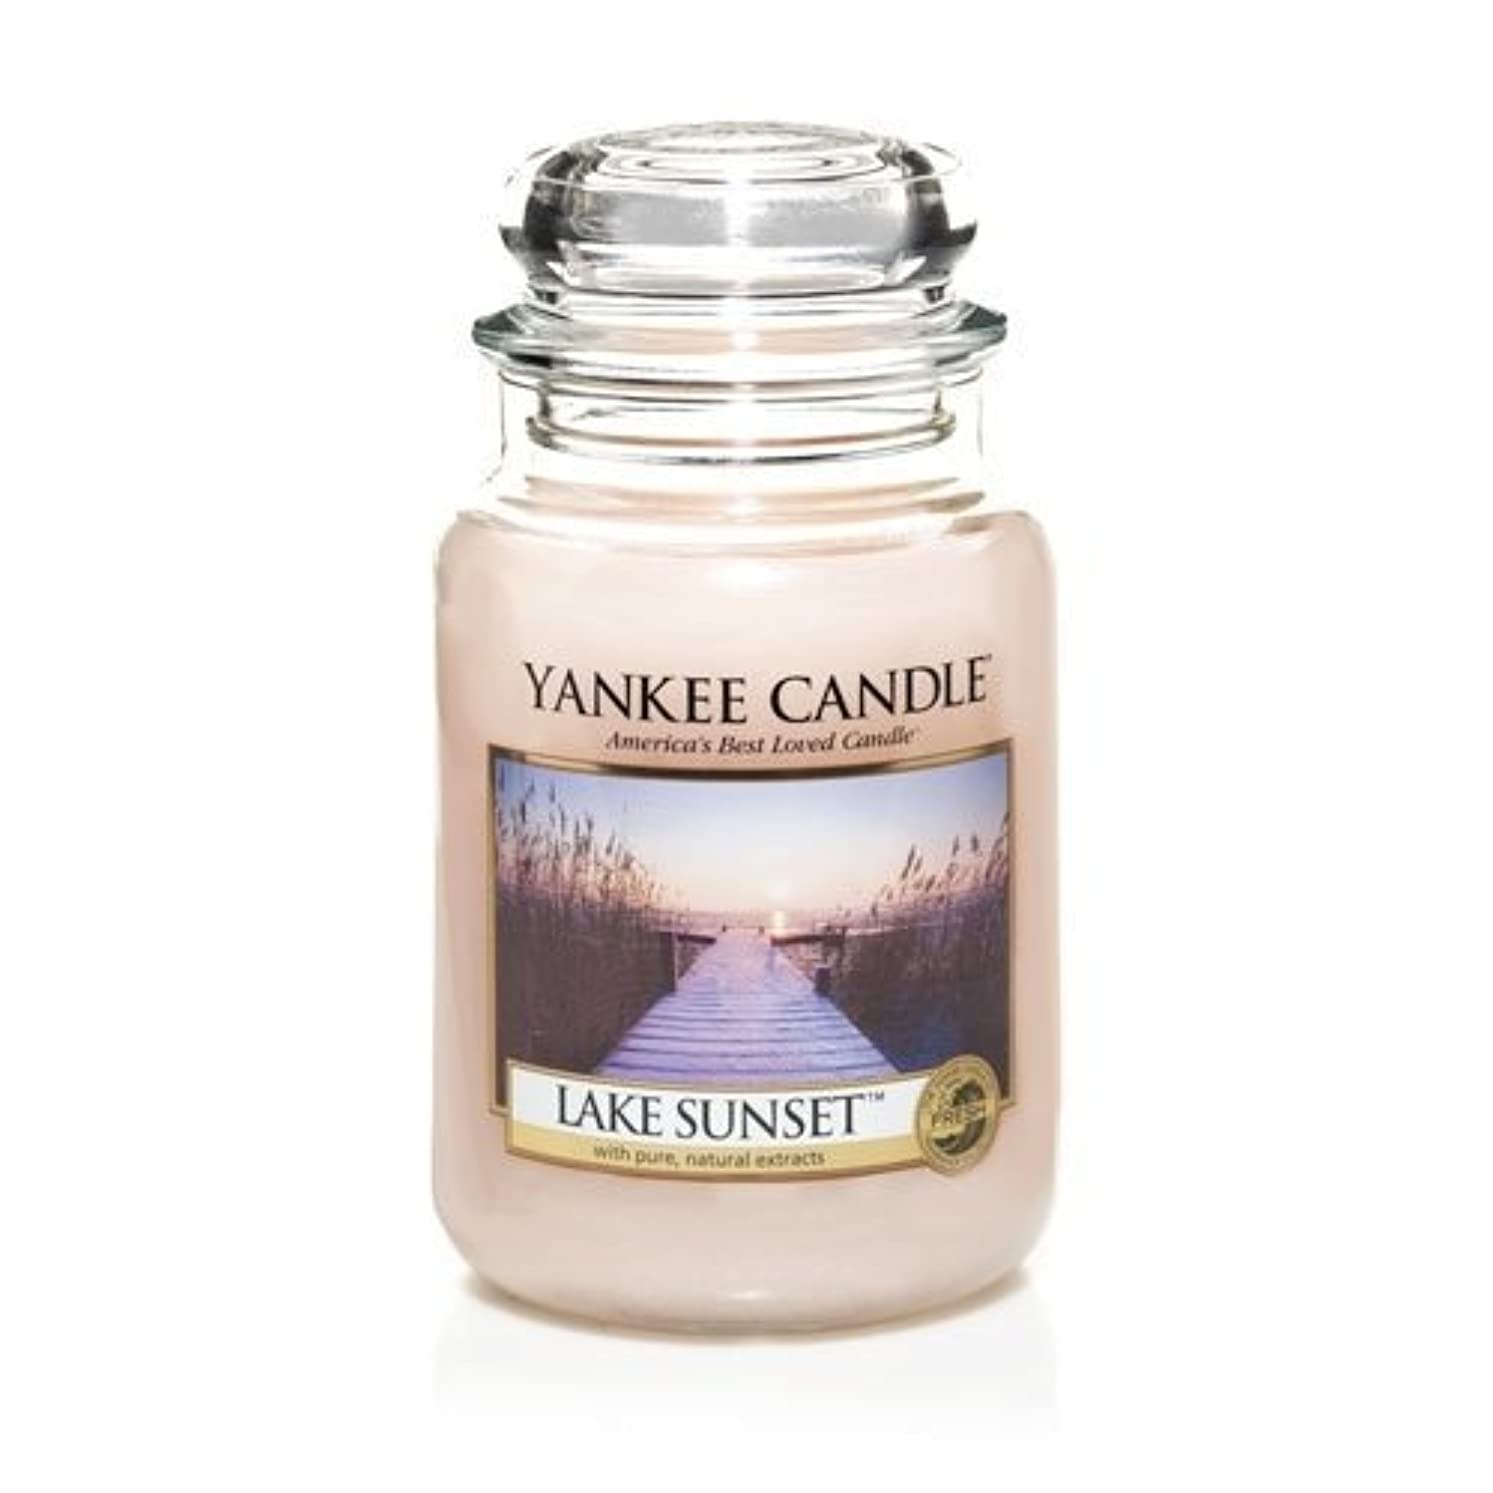 Yankee Candle LAKE SUNSET 22 oz Large Jar Candle - New for Fall 2013 by Yankee Candle [並行輸入品]